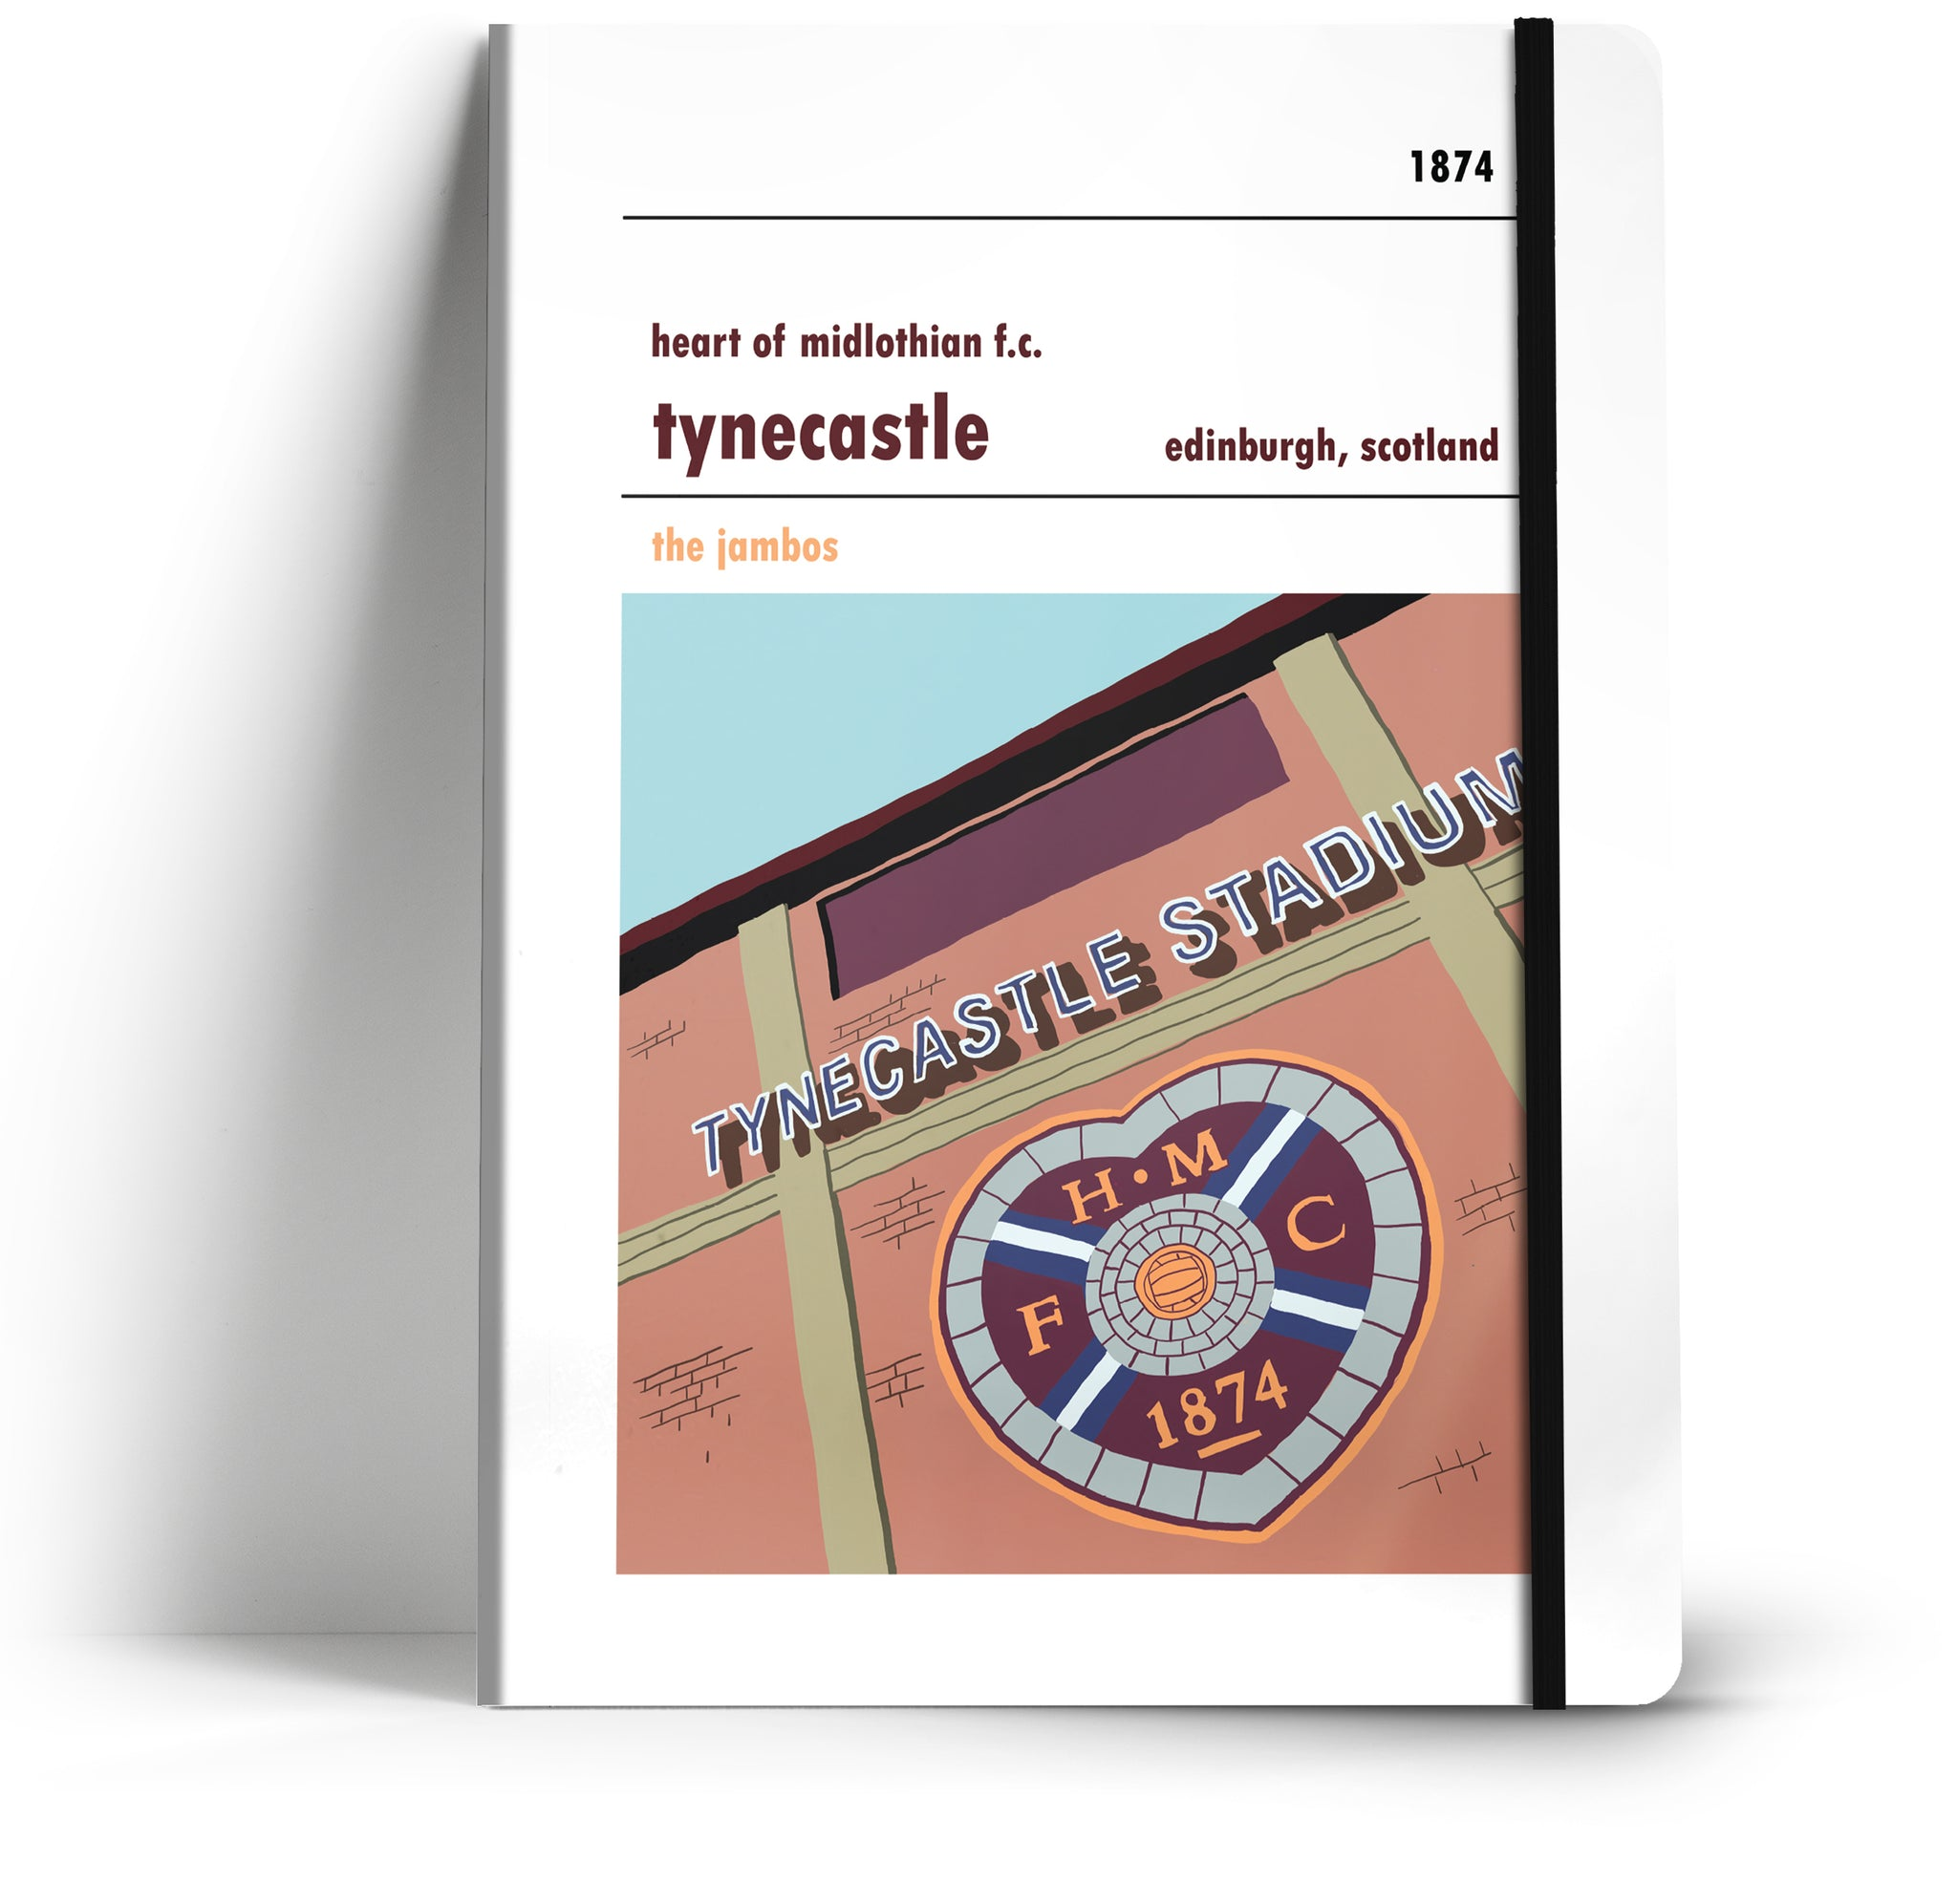 Heart of Midlothian Football Club A5 Notebook